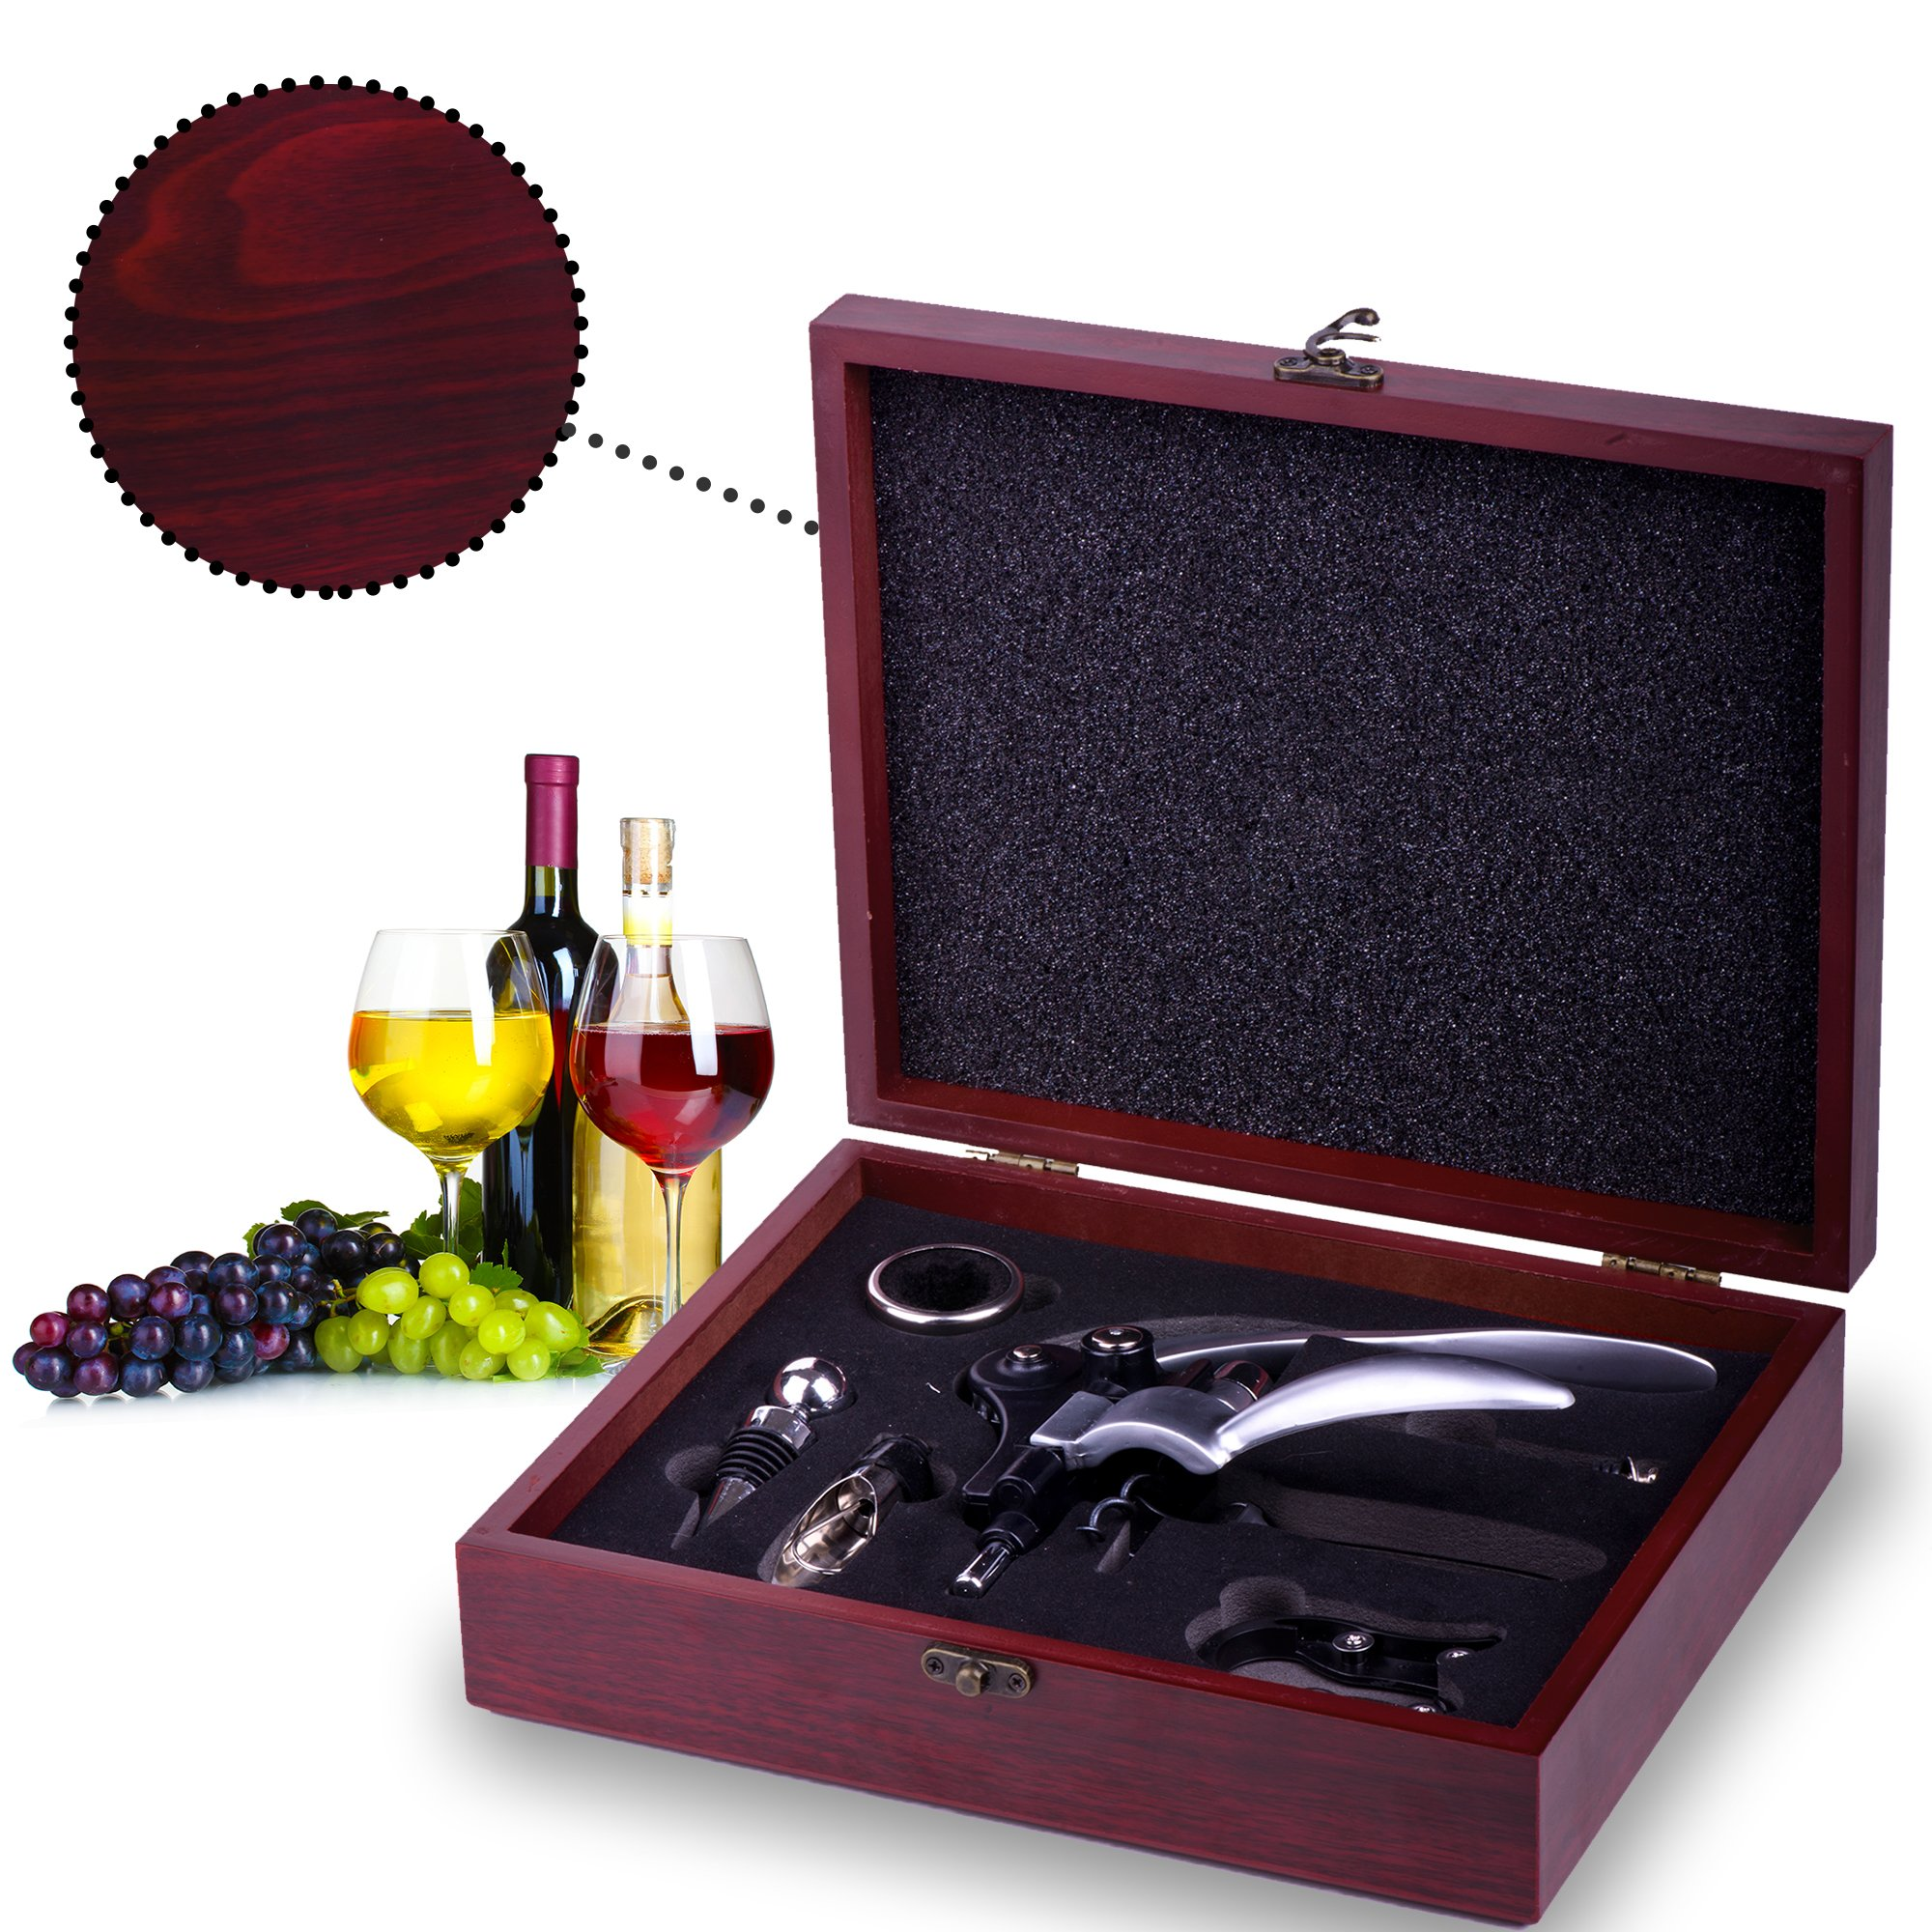 Wine Opener Set with Wine Stoppers, Drip Ring, Foil Cutter and Extra Corkscrew – Premium 6-Piece Gift Set in Elegant Cherry Wood Case